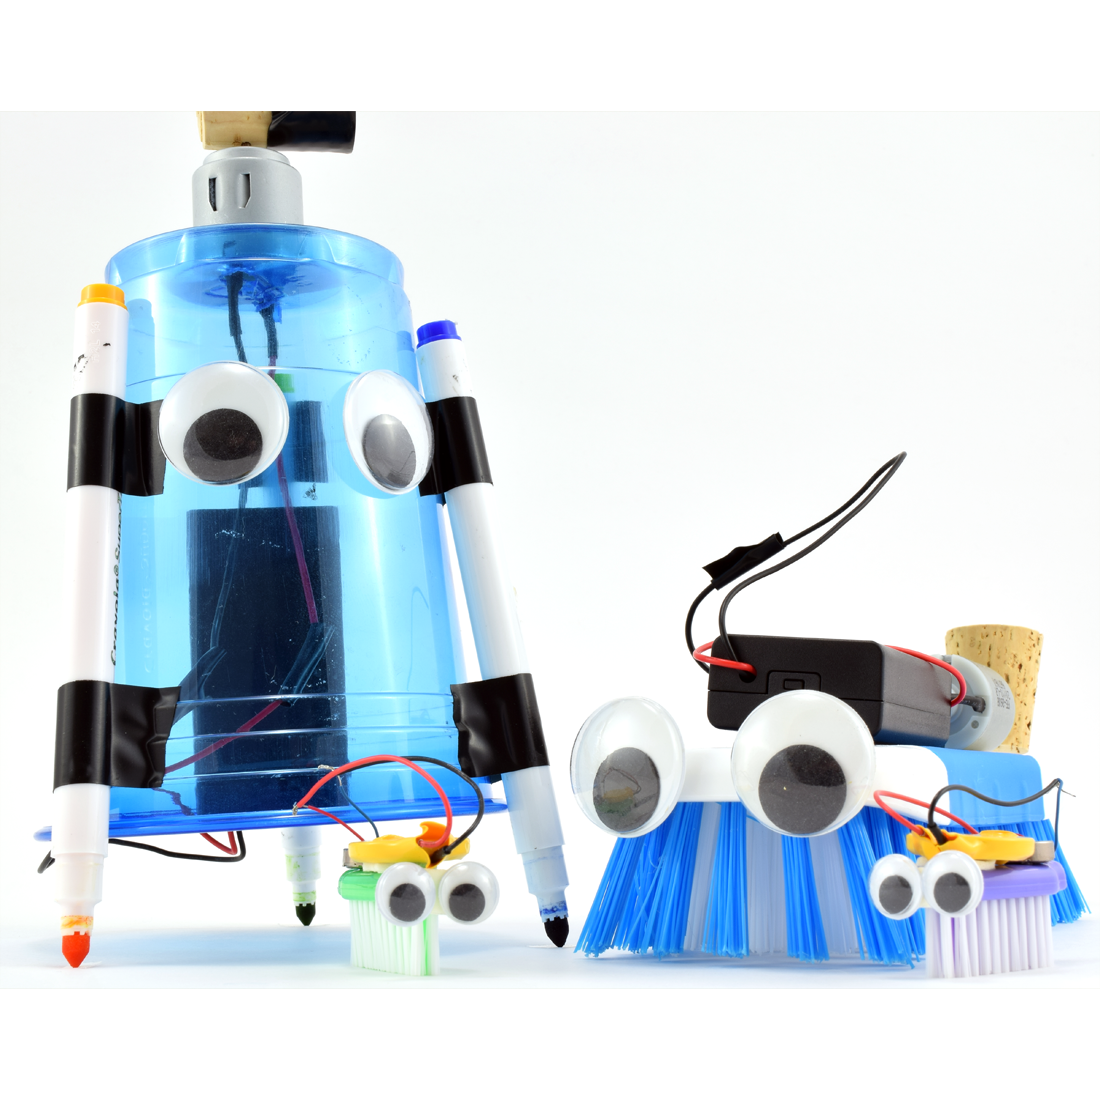 Art Bot Build A Wobbly Robot That Creates Art With